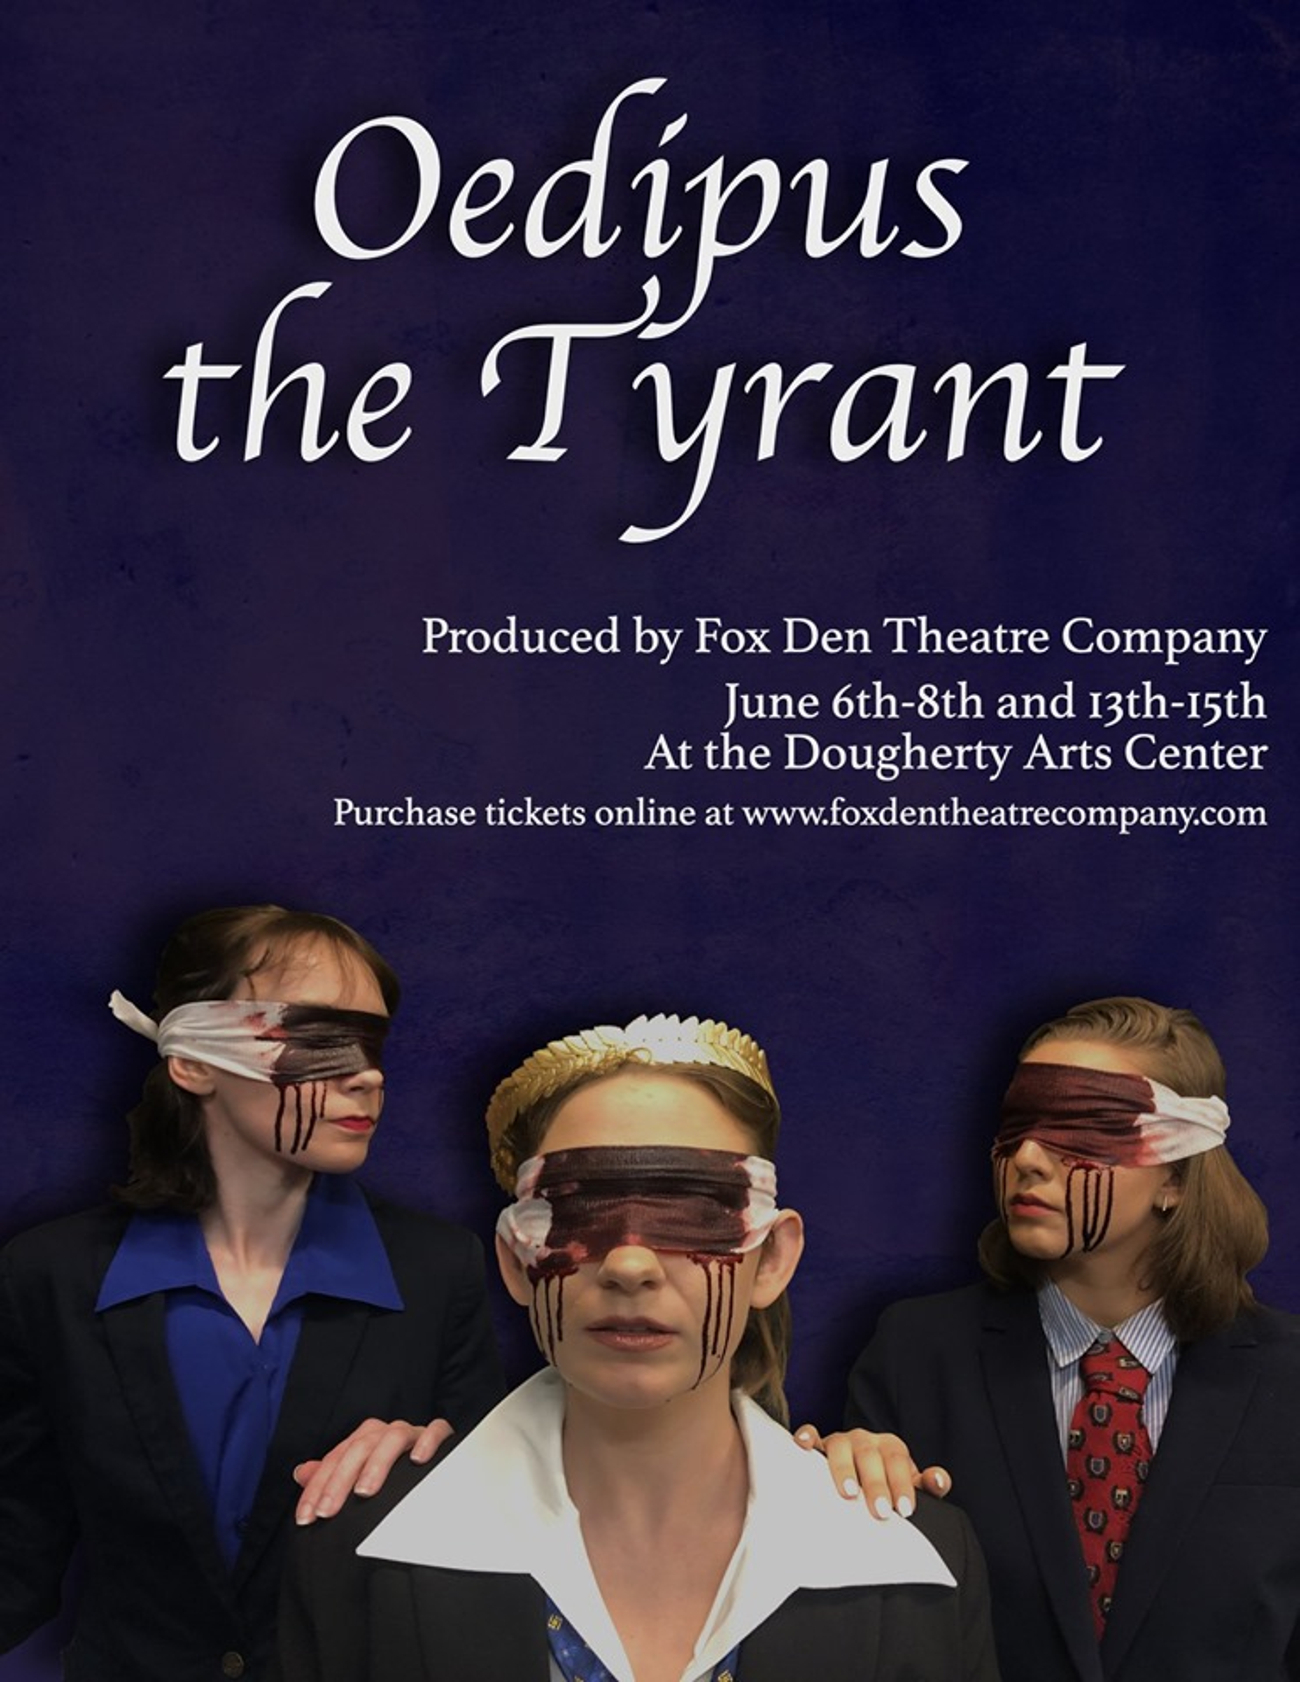 BWW Review: OEDIPUS THE TYRANT at Fox Den Theatre Company